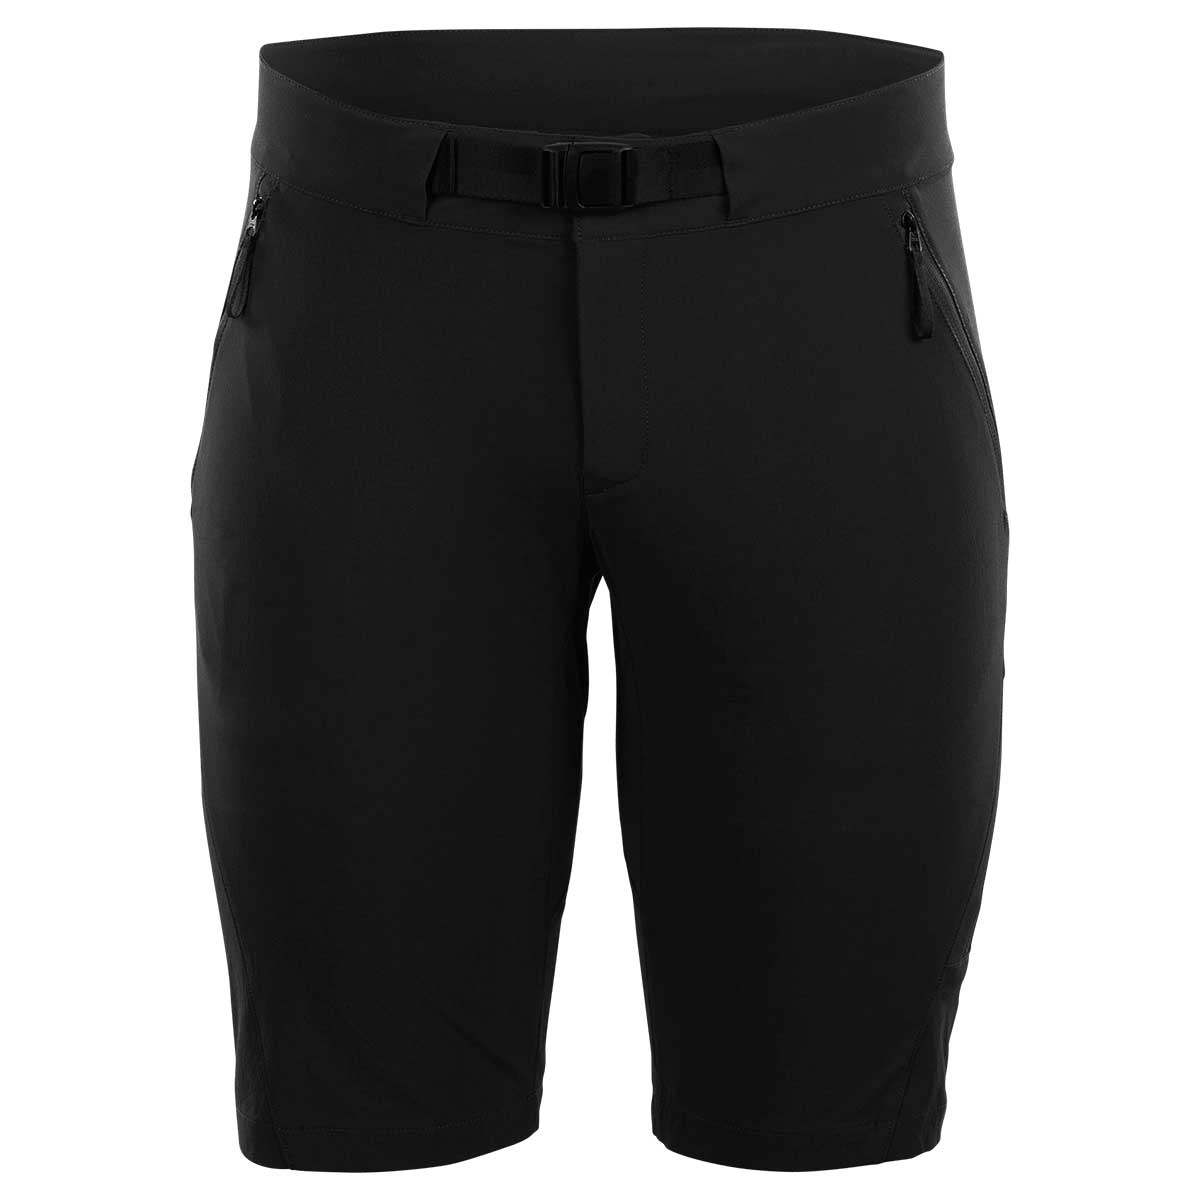 Sugoi men's Off Grid shorts in Black